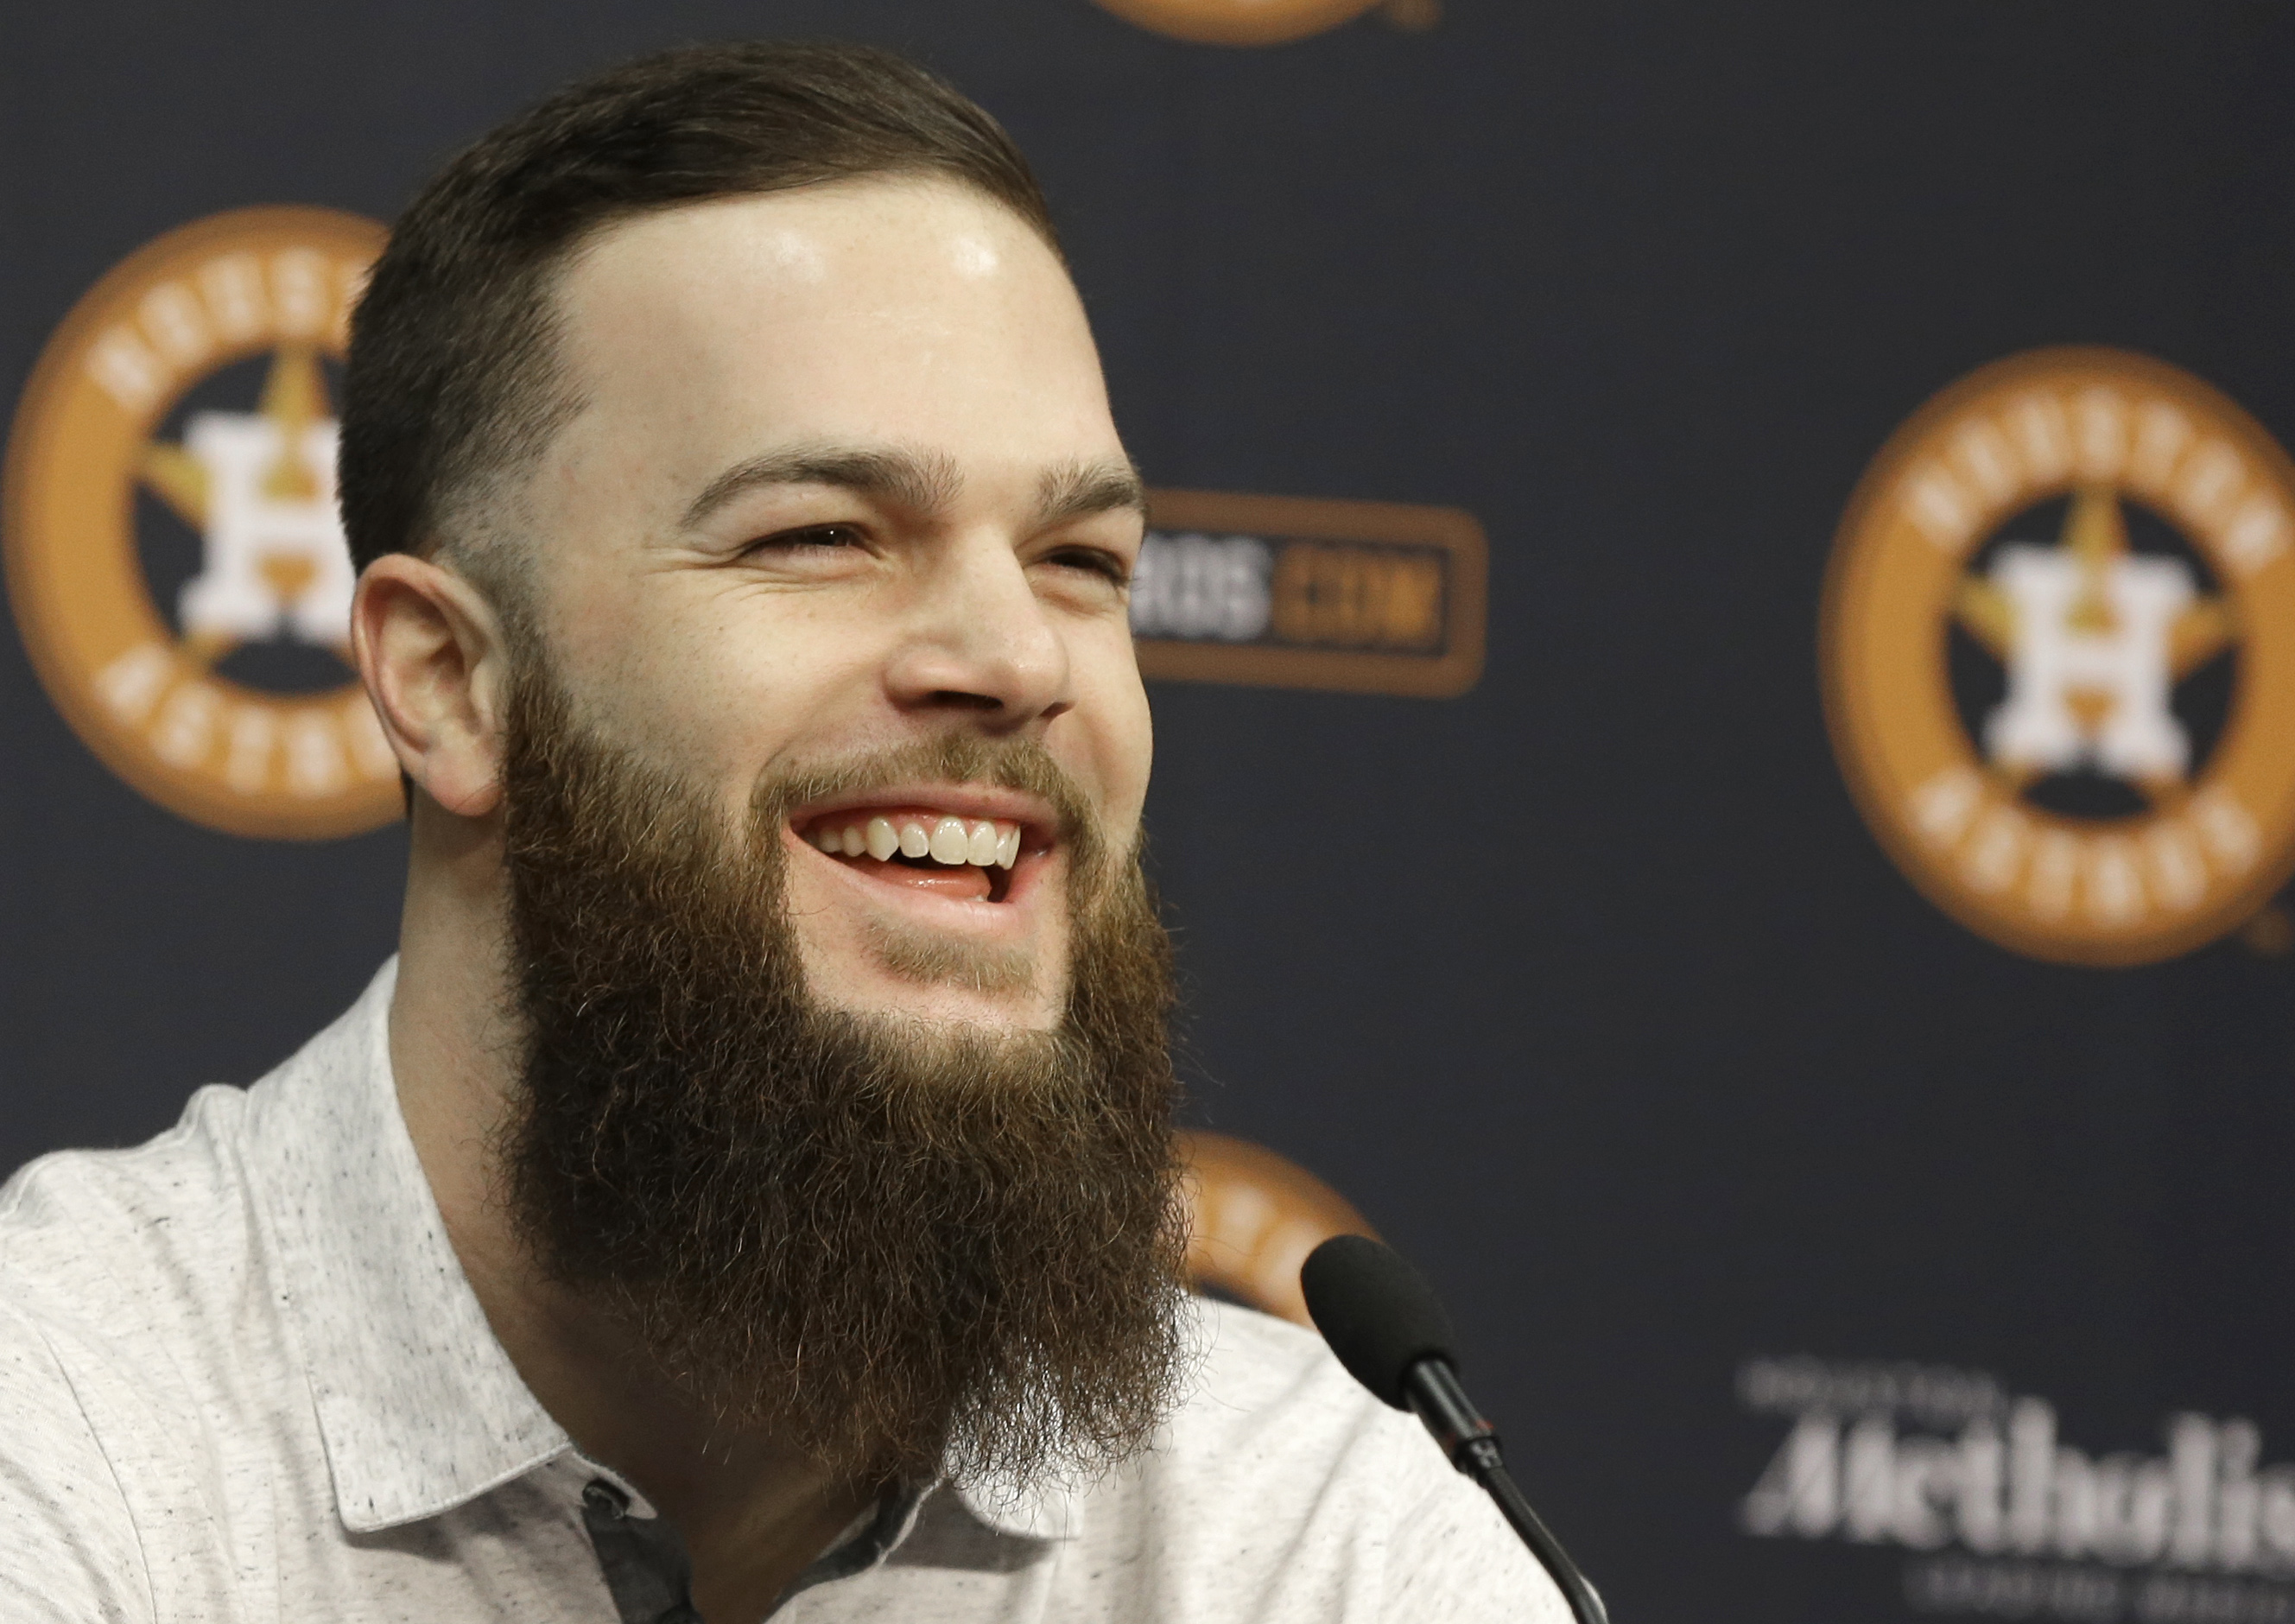 FILE - In this Nov. 19, 2015, file photo, Houston Astros pitcher Dallas Keuchel speaks at a press conference in Houston, the day after winning the AL Cy Young Award. Houston's ace is proud of his personal accomplishments but he won't be satisfied until he